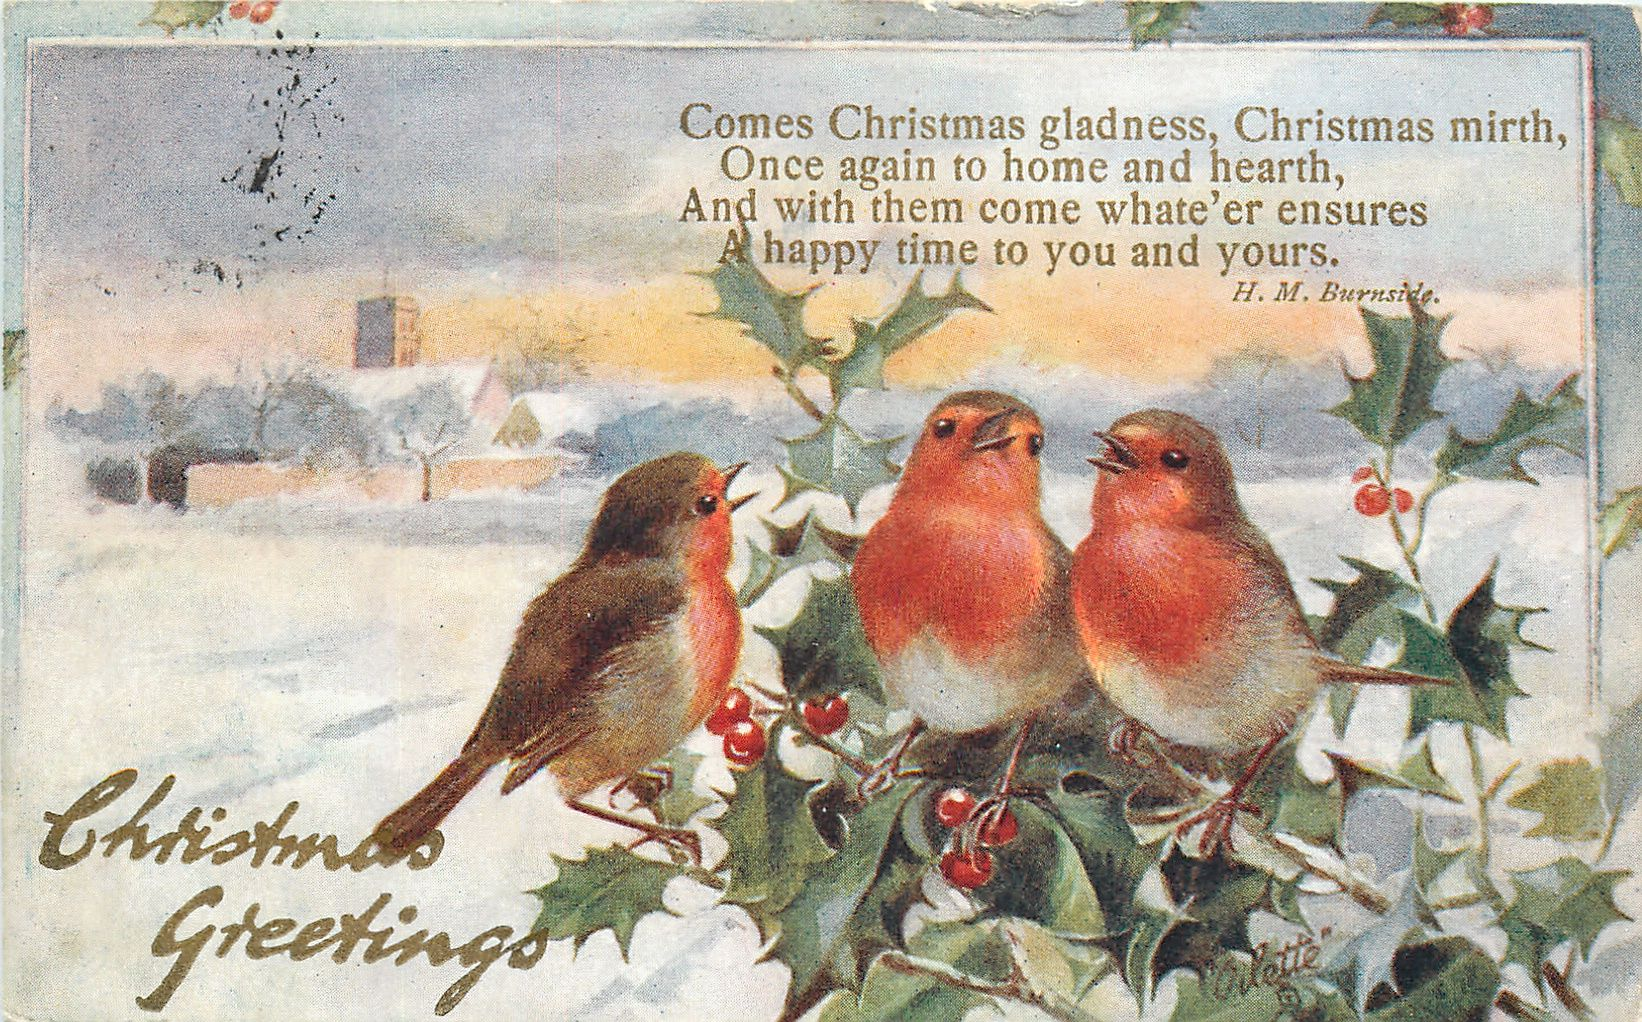 Full Sized Image: CHRISTMAS GREETINGS three robins right on holly - TuckDB